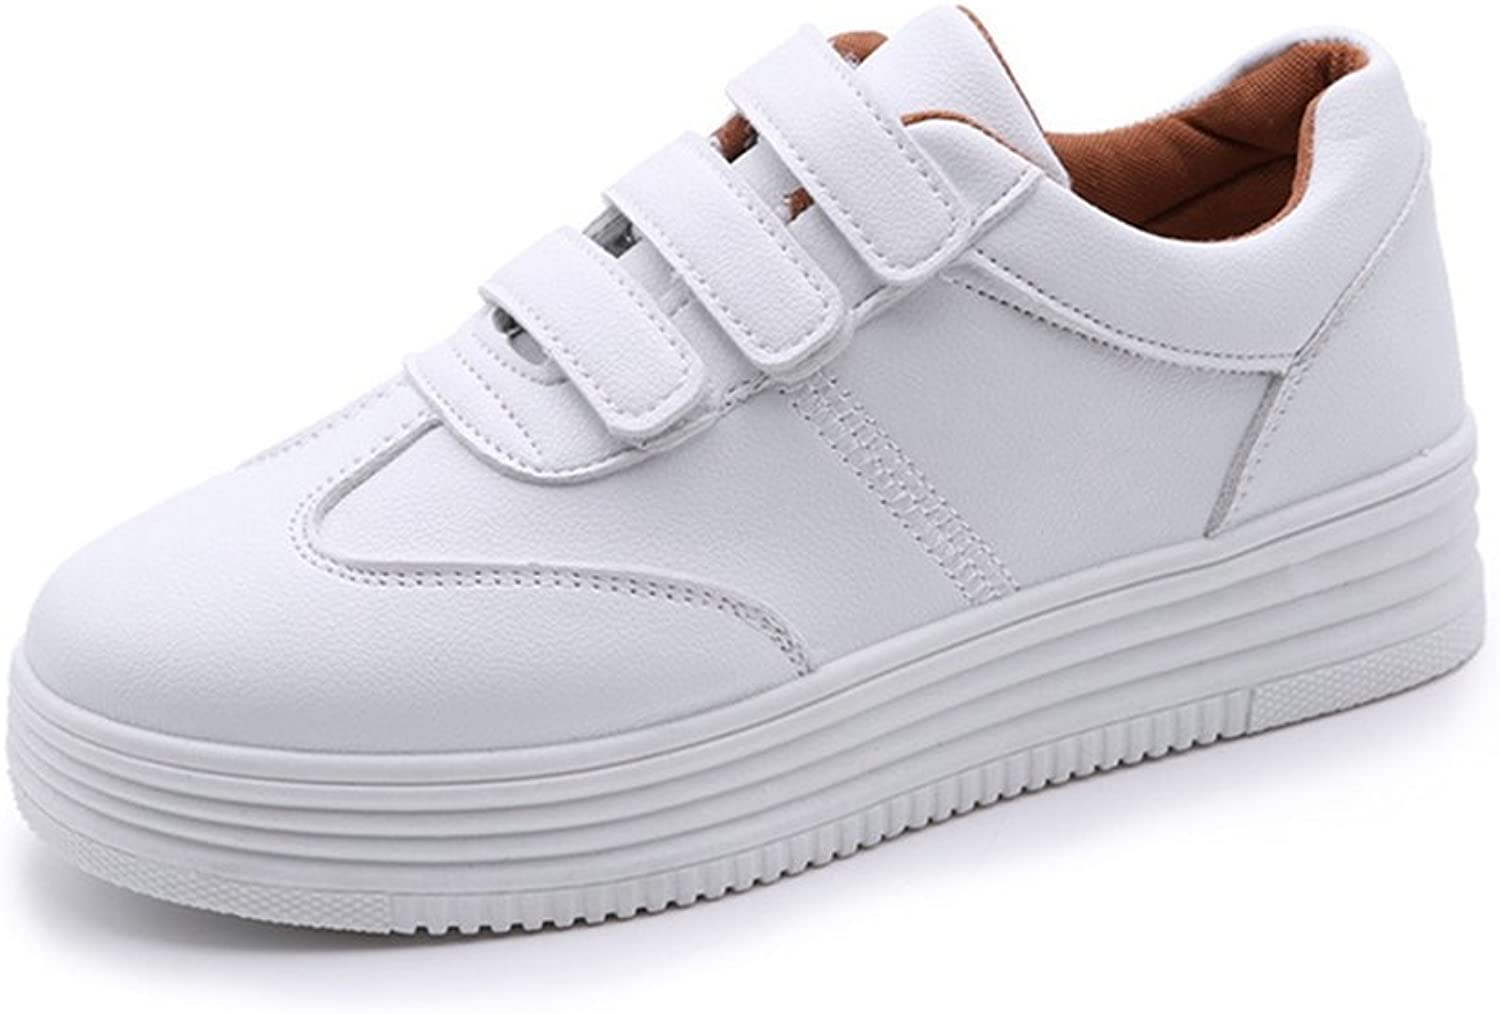 CYBLING Loafers shoes Womens Casual Fashion Sneakers Outdoor Walking Trainers shoes